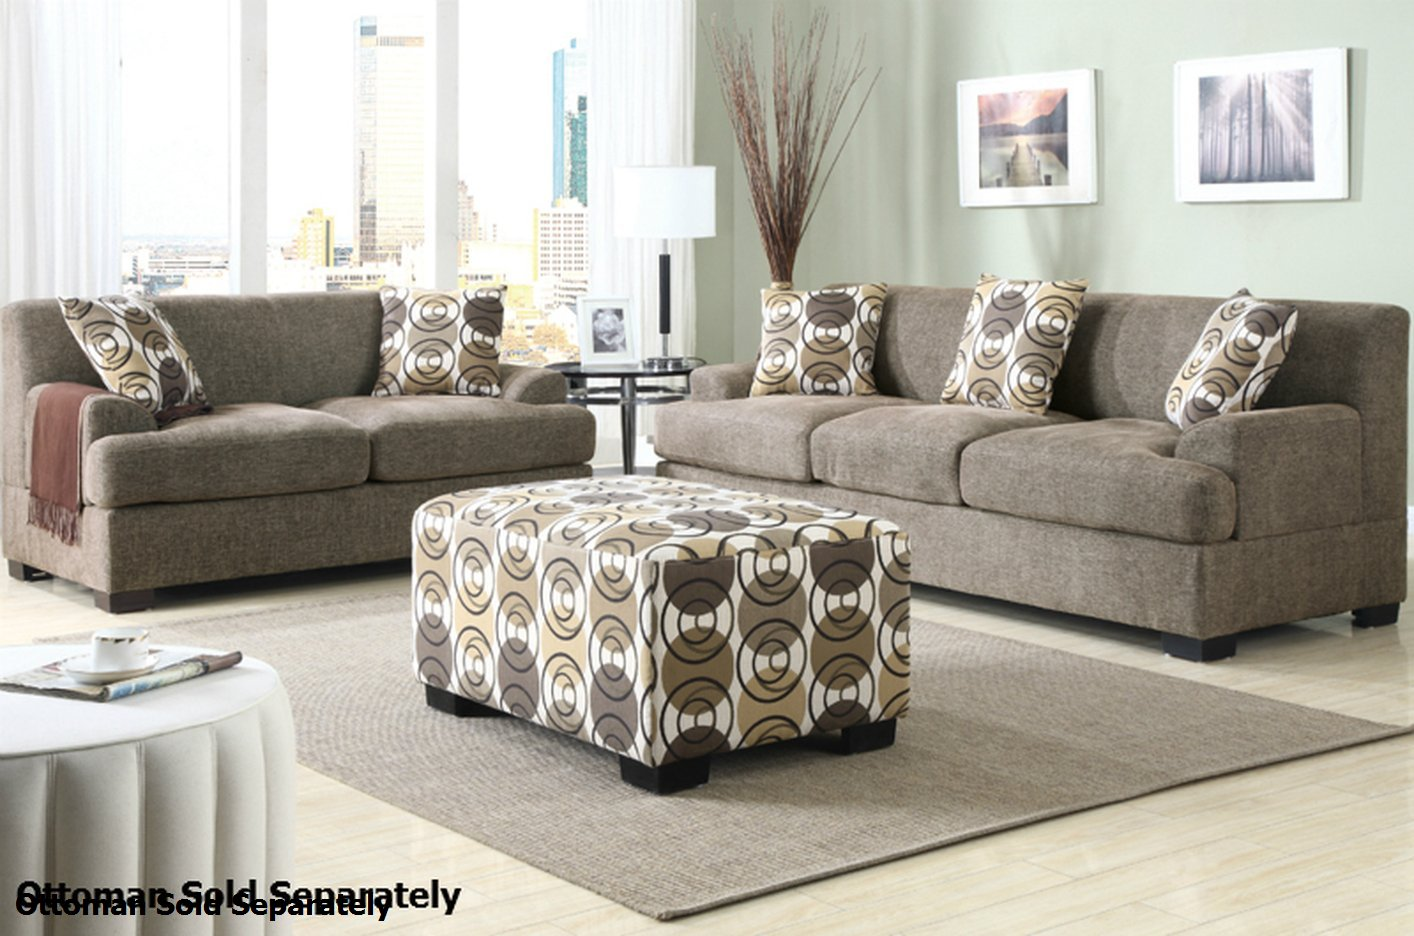 Poundex Montreal F7450 F7449 Beige Fabric Sofa And Loveseat Set Steal A Sofa Furniture Outlet